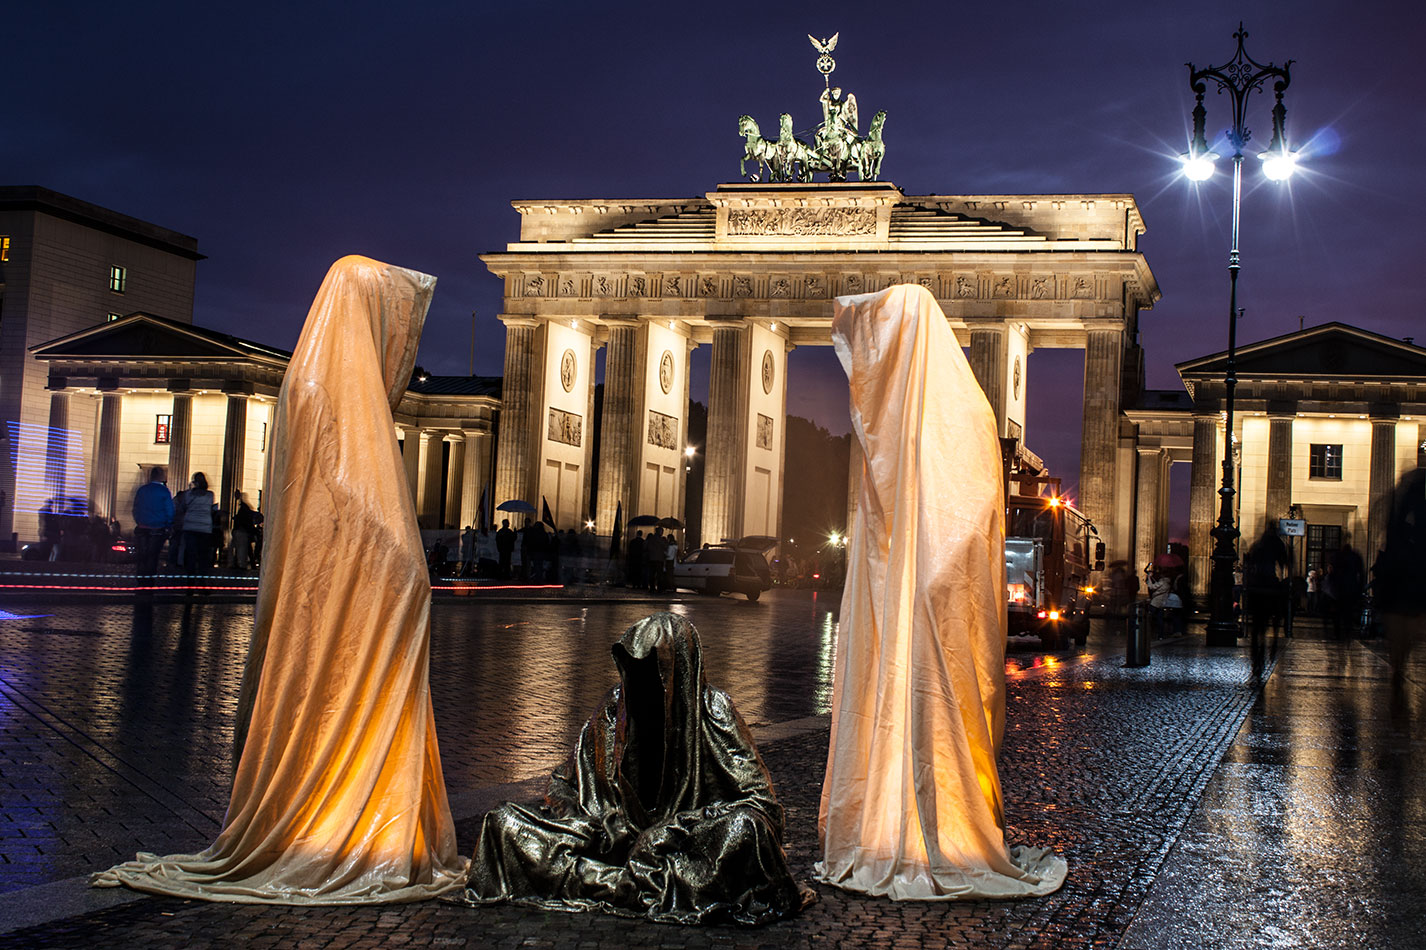 festival-of-lights-berlin-brandenburg-gate-light-art-show-exhibition-lumina-guardians-of-time-manfred-kili-kielnhofer-contemporary-arts-design-sculpture-3262